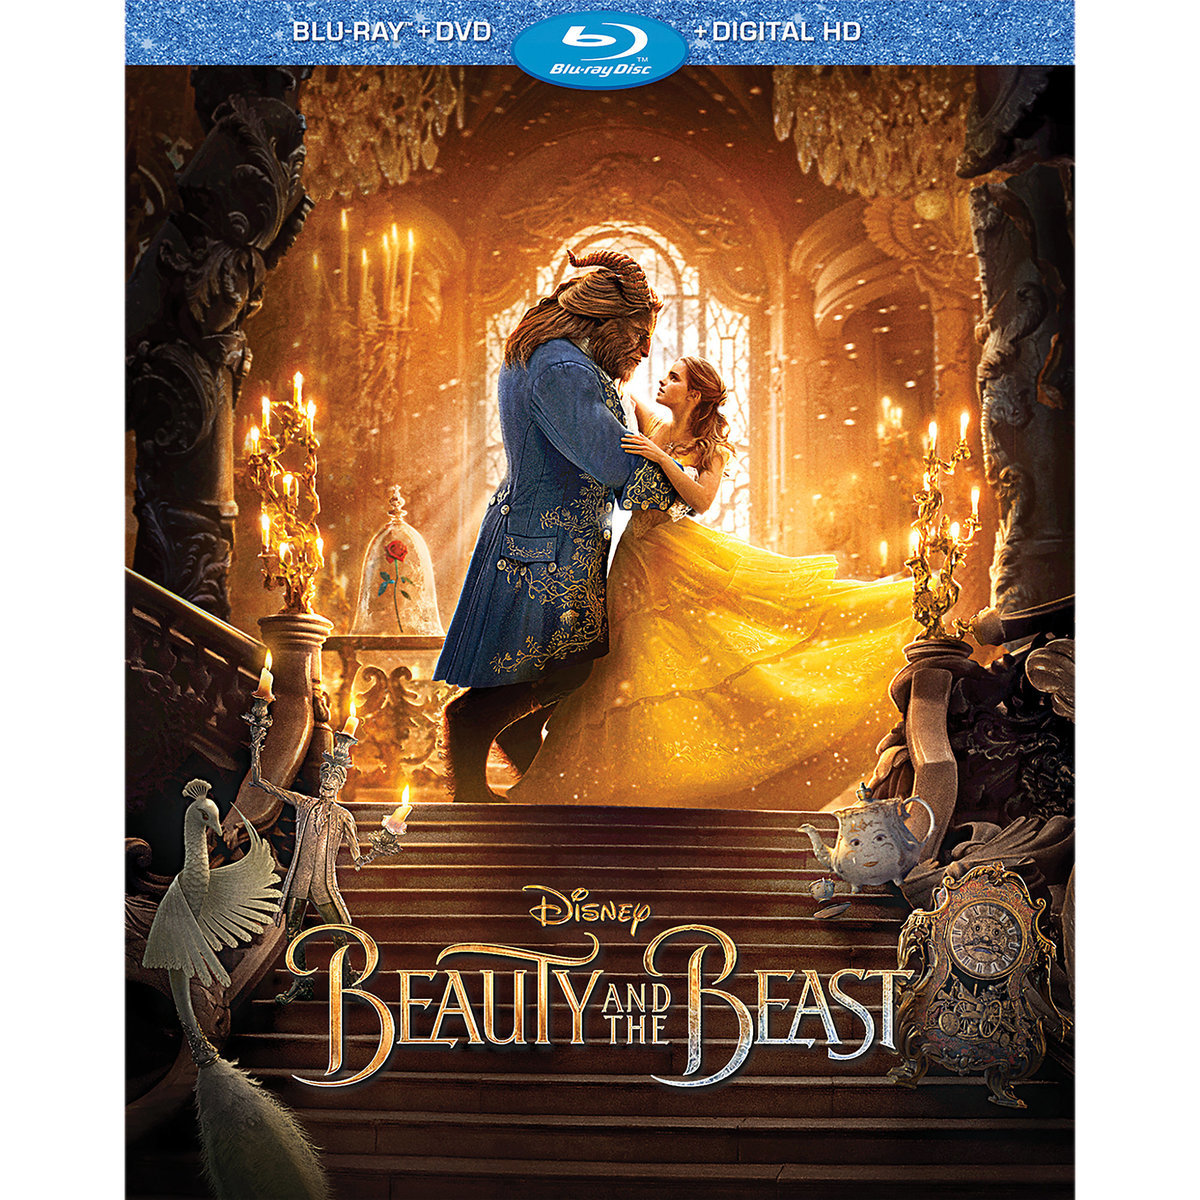 Beauty and the Beast (Live Action) (Blu-ray + DVD + Digital HD)